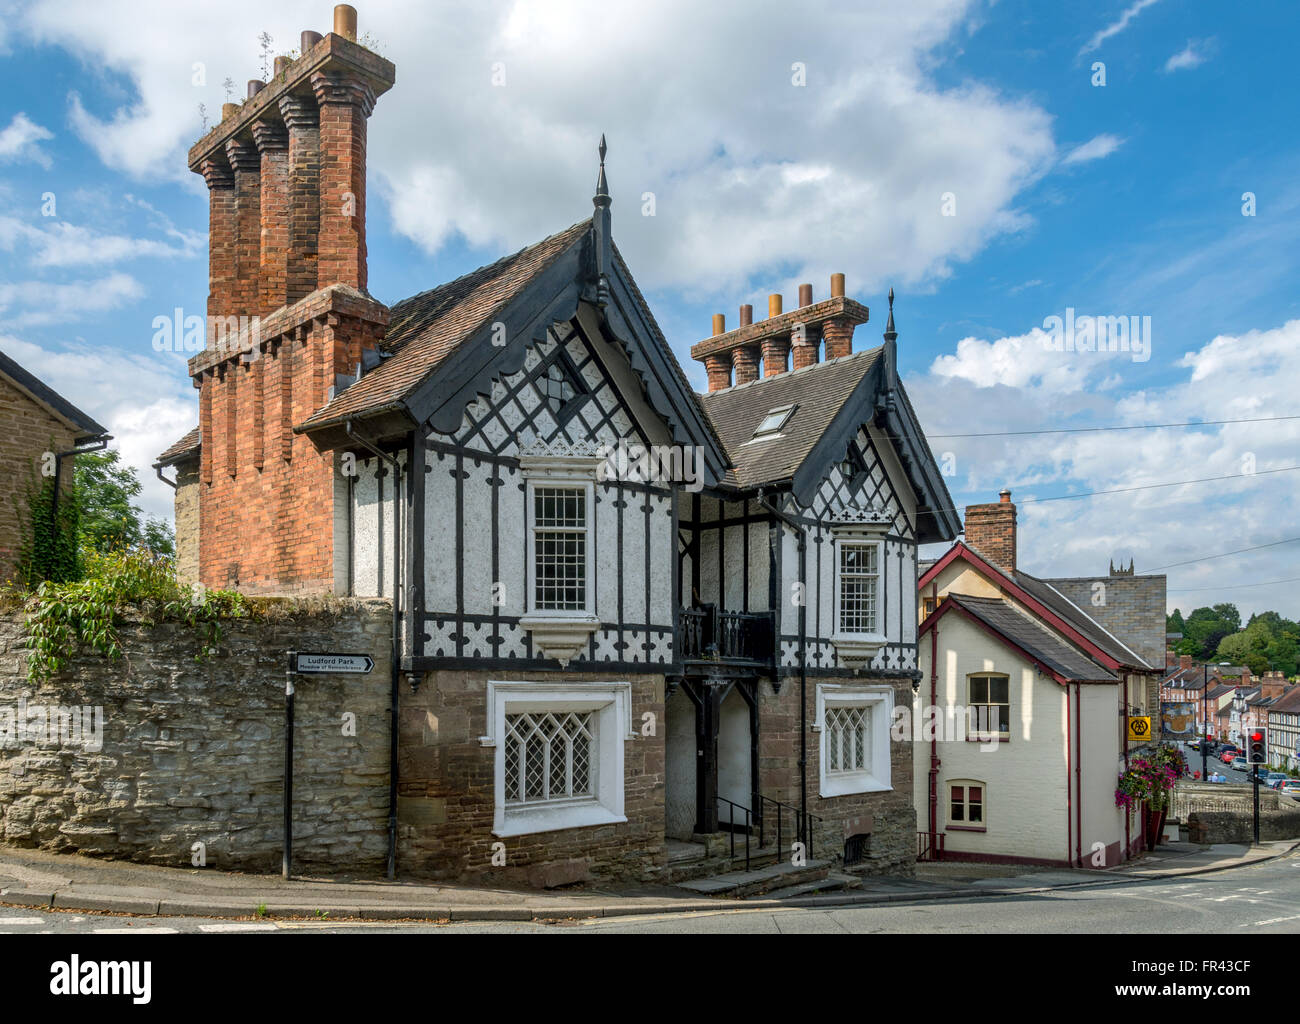 Cliff Villas, historic half-timbered cottages at Ludford, Ludlow, Shropshire, England, UK - Stock Image